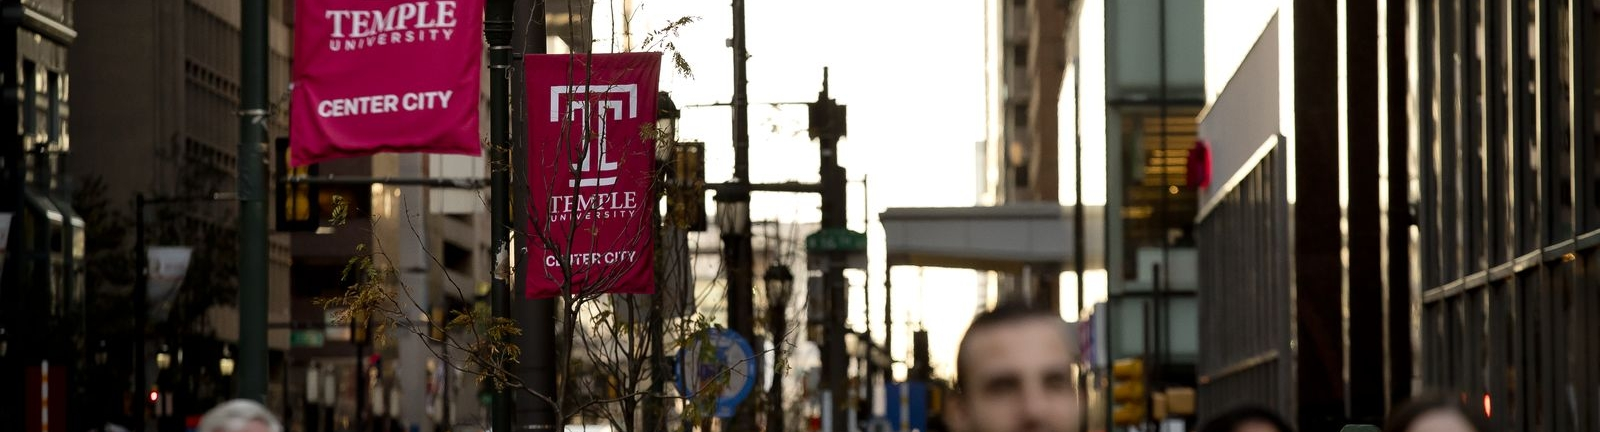 Temple University Center City banners hanging over a busy street in Center City Philadelphia